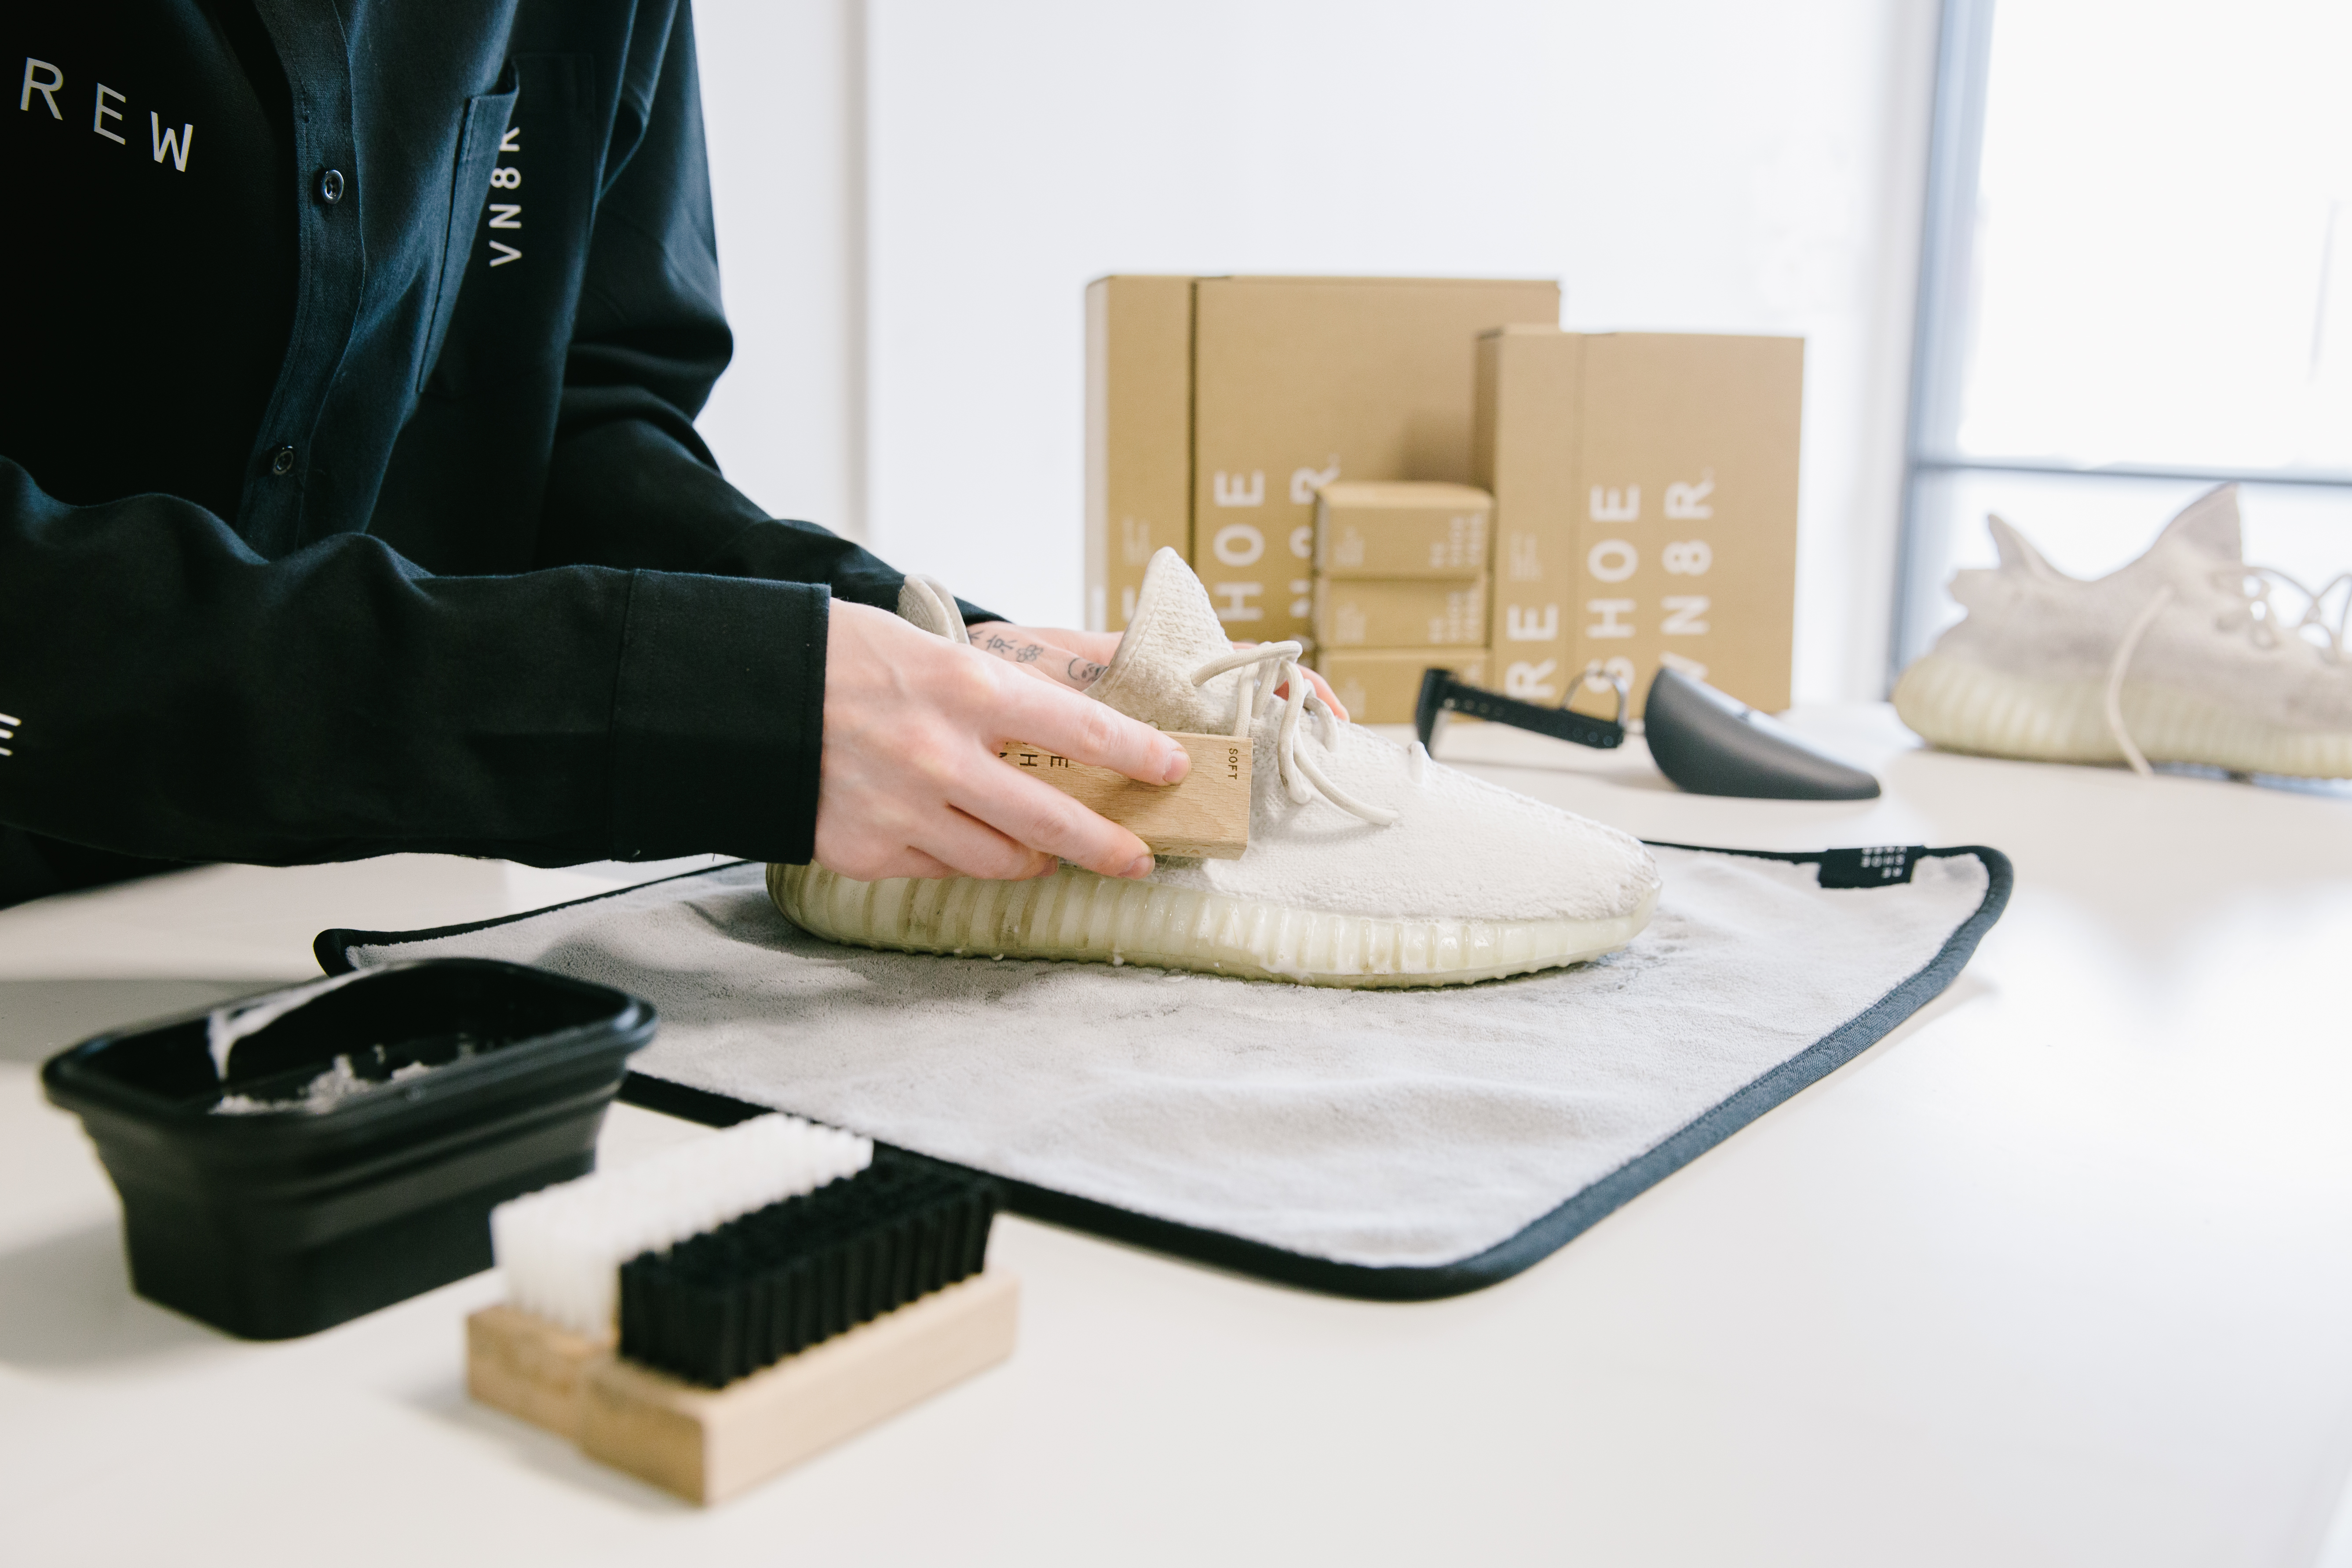 How to Clean White Yeezys at Home